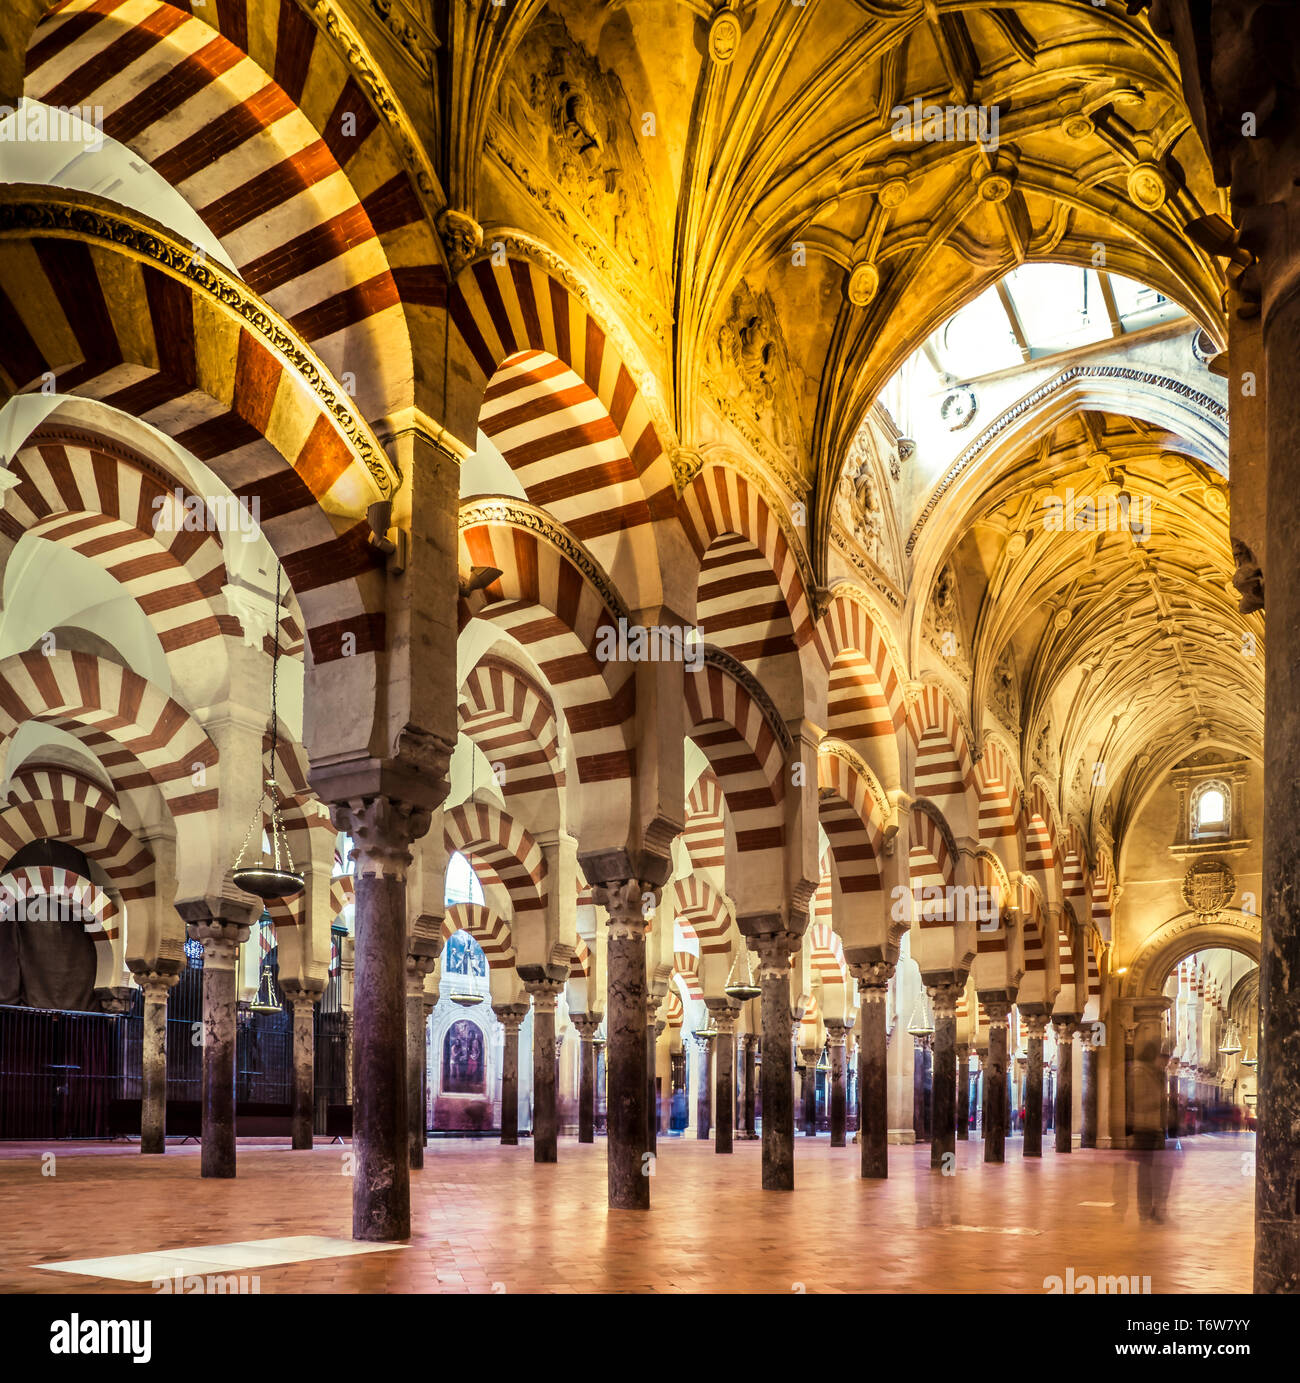 Inside view of The Mosque-Cathedral of Cordoba, Spain April 25, 2019 Stock Photo